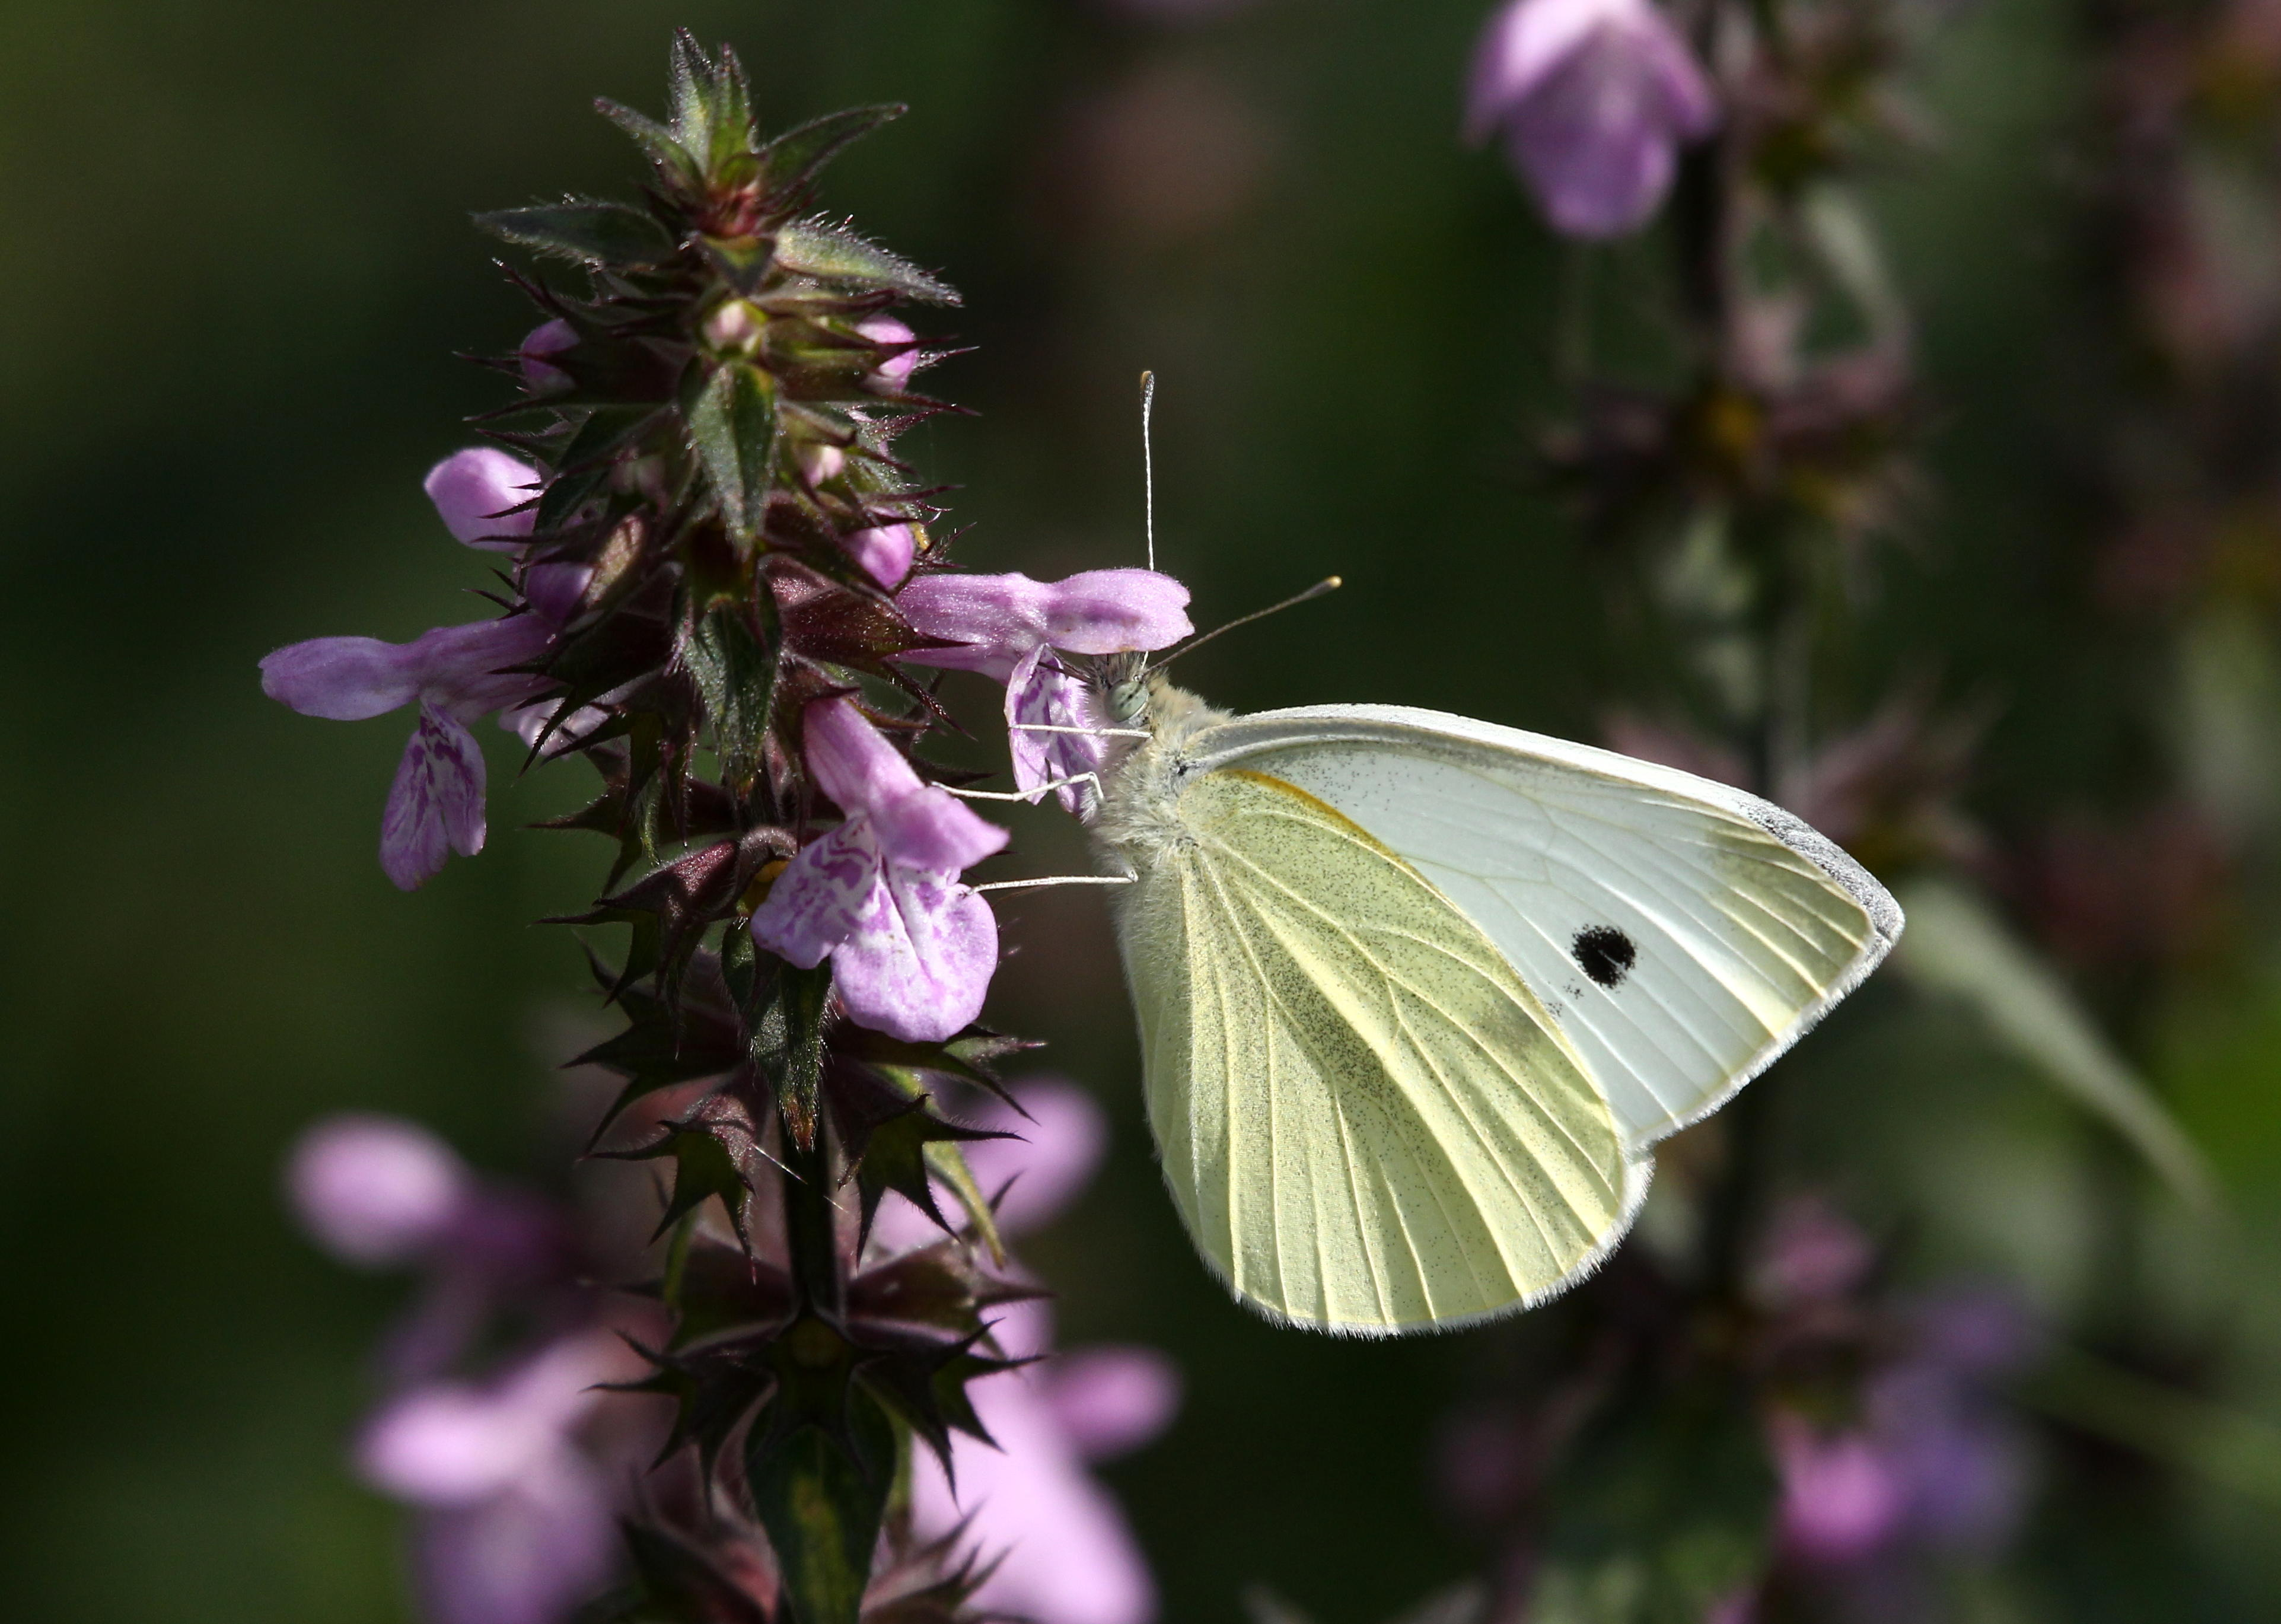 FRPHG0 European Small Cabbage White butterfly (Pieris Rapae) feeding on a purple flower